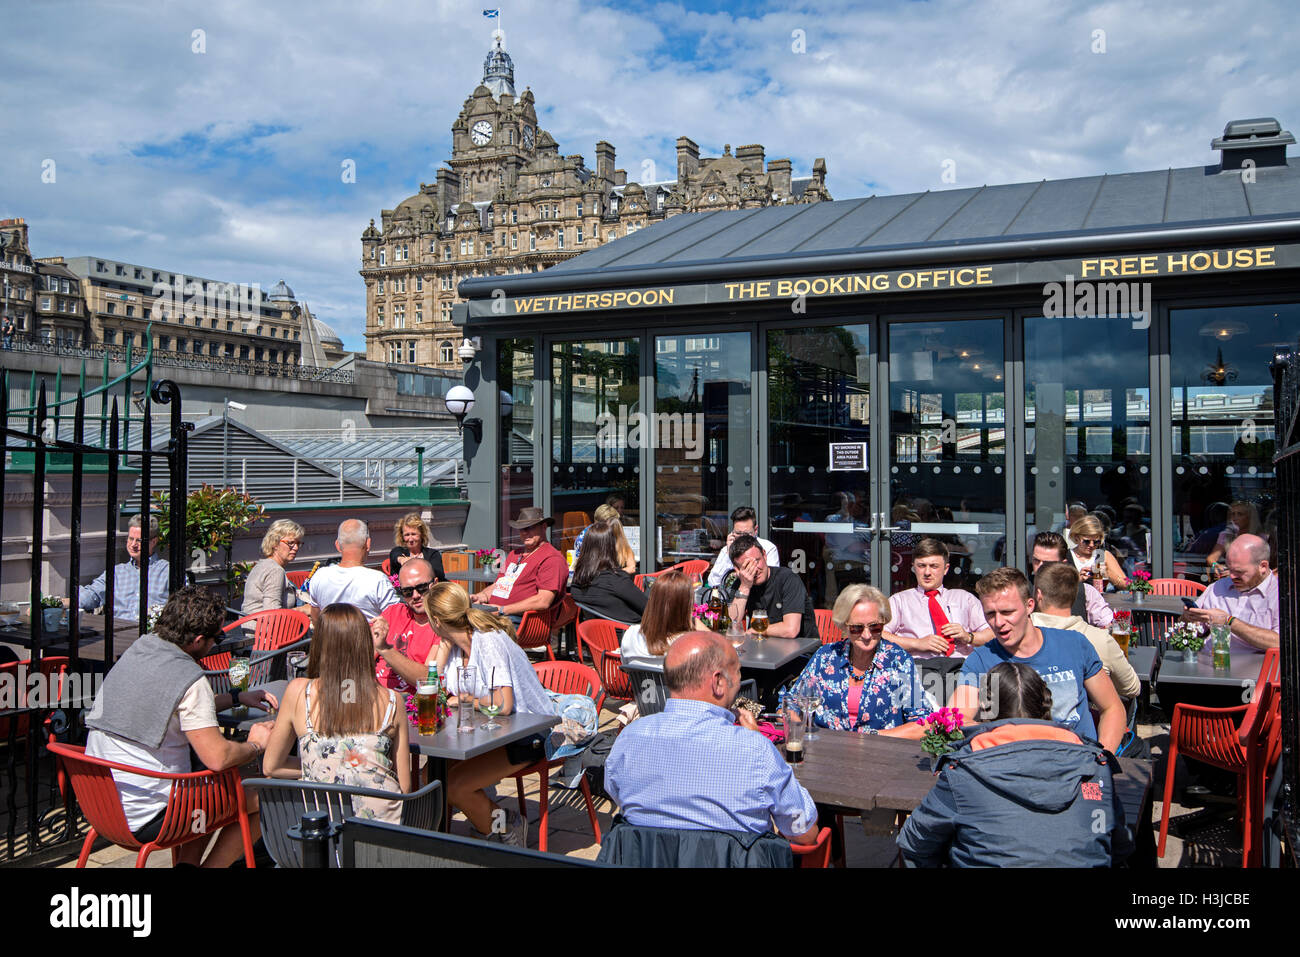 Customers enjoying a drink at Wetherspoon's on Waverley Bridge, Edinburgh with the Balmoral Hotel in the background. - Stock Image